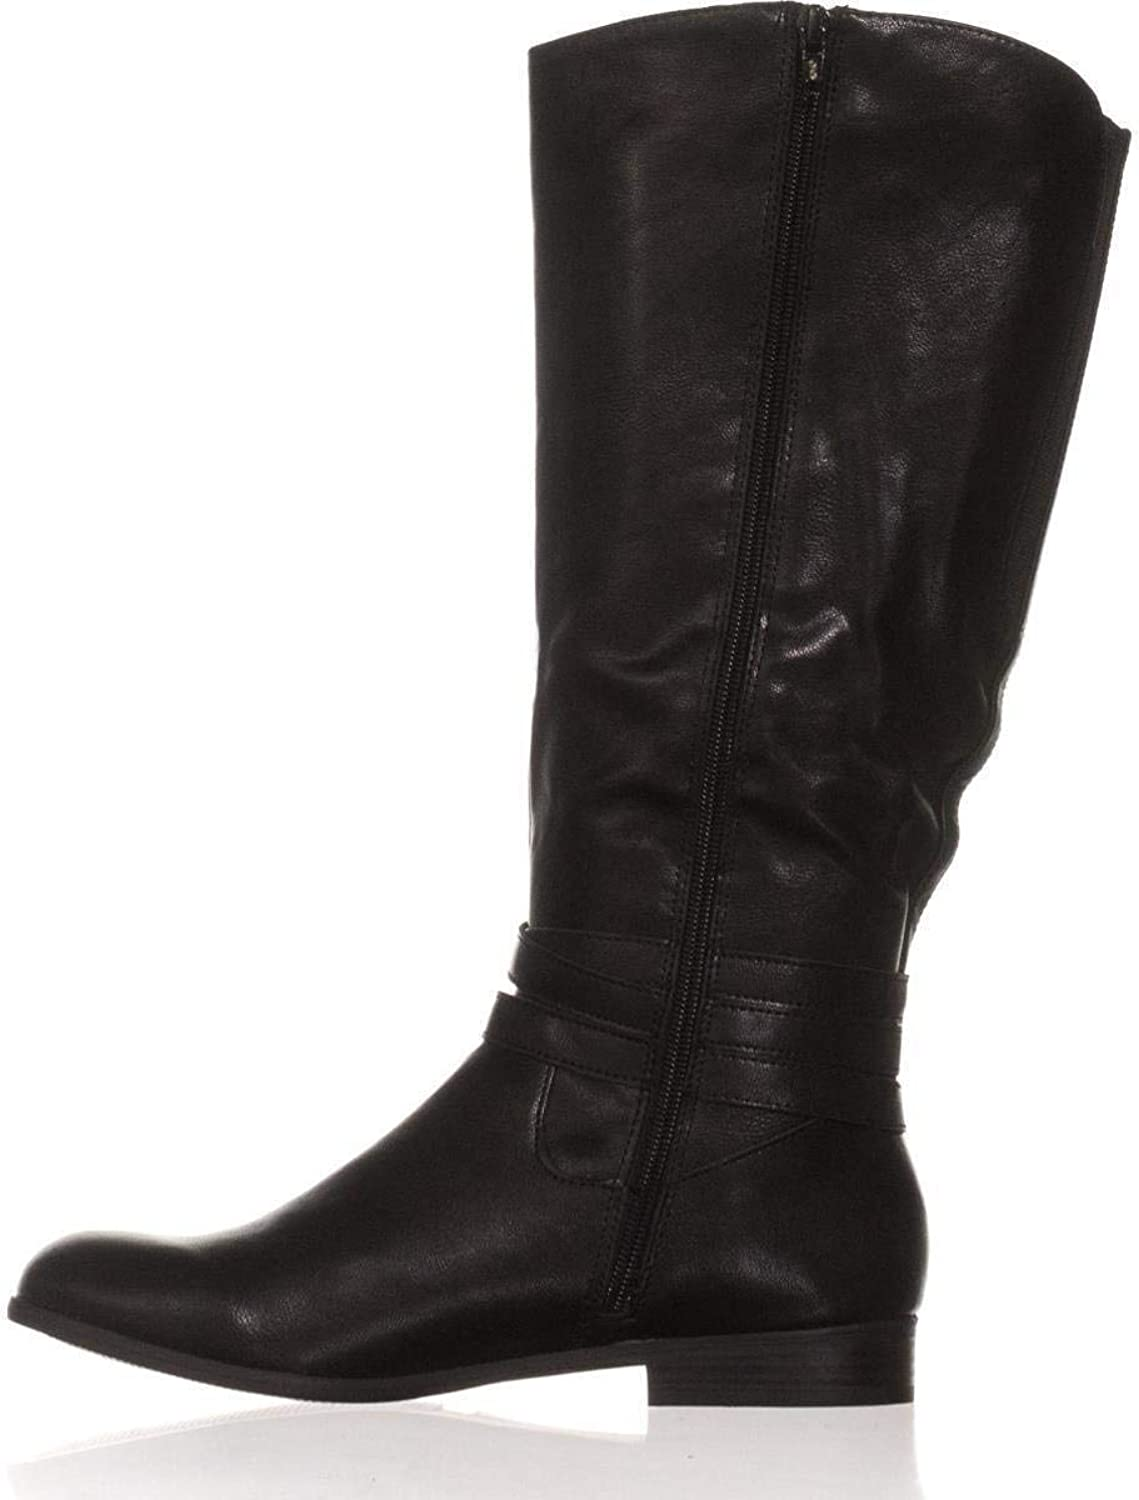 Style & Co. Womens Keppur Closed Toe Knee High Fashion Boots, Black, Size 9.0